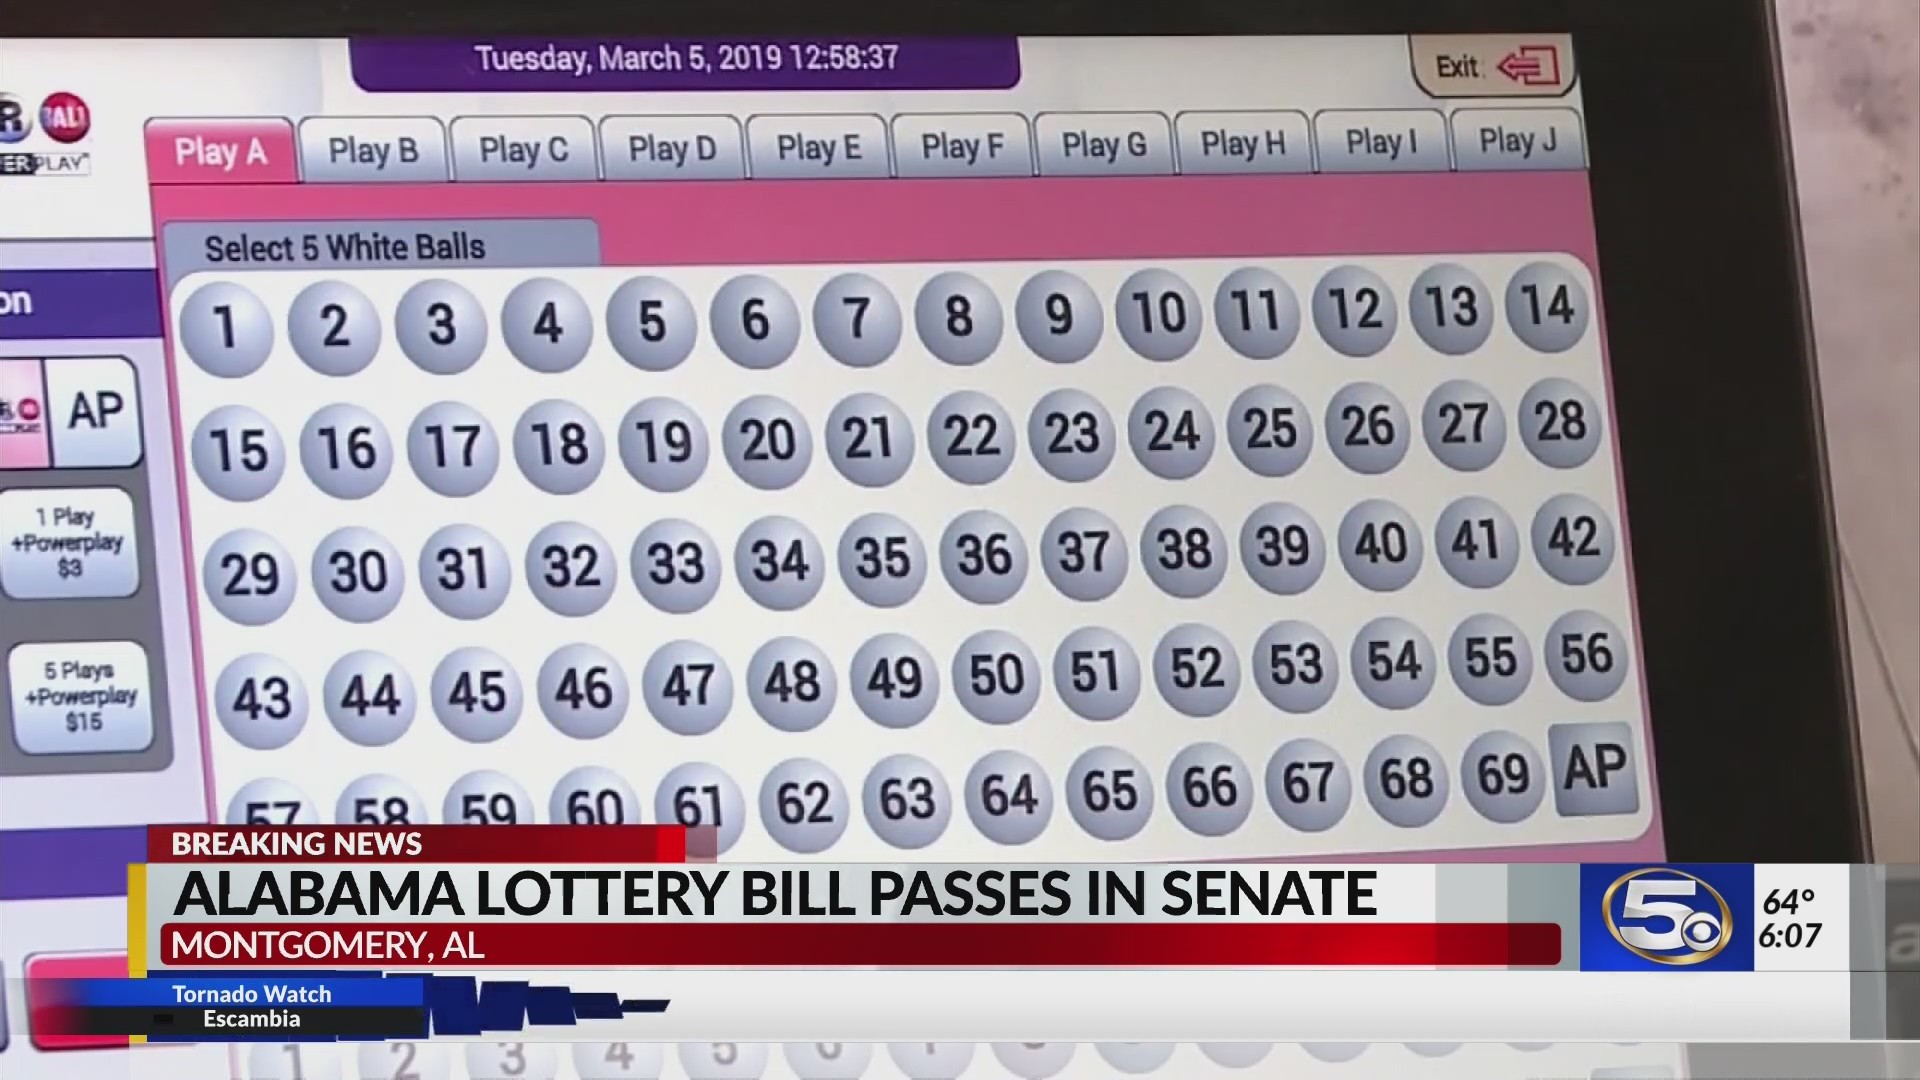 VIDEO: Lottery bill passes Alabama senate